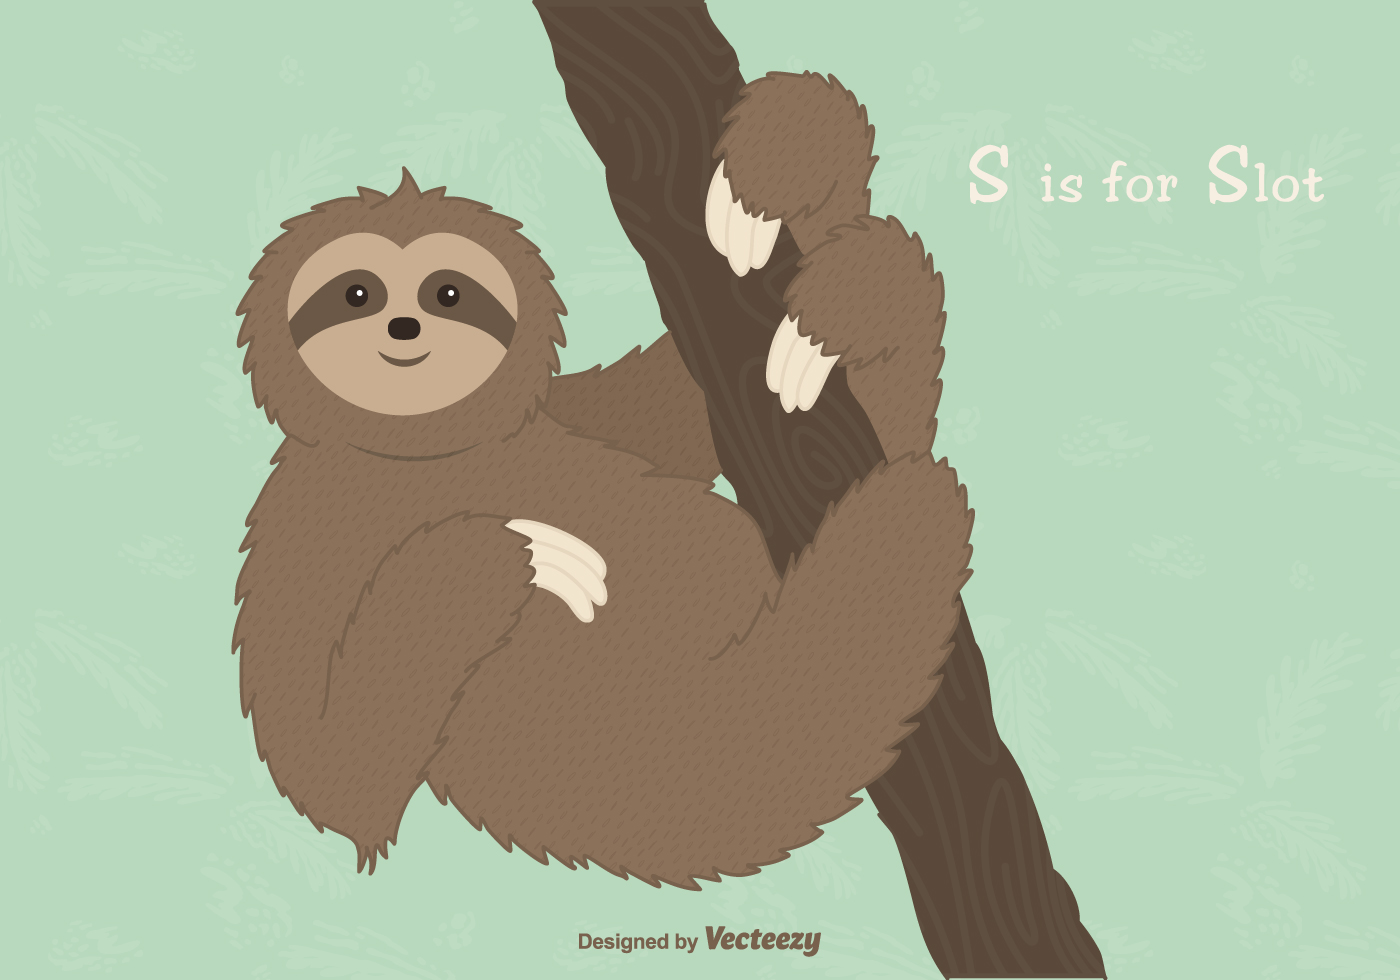 Free Sloth Vector Illustration - Download Free Vector Art ...